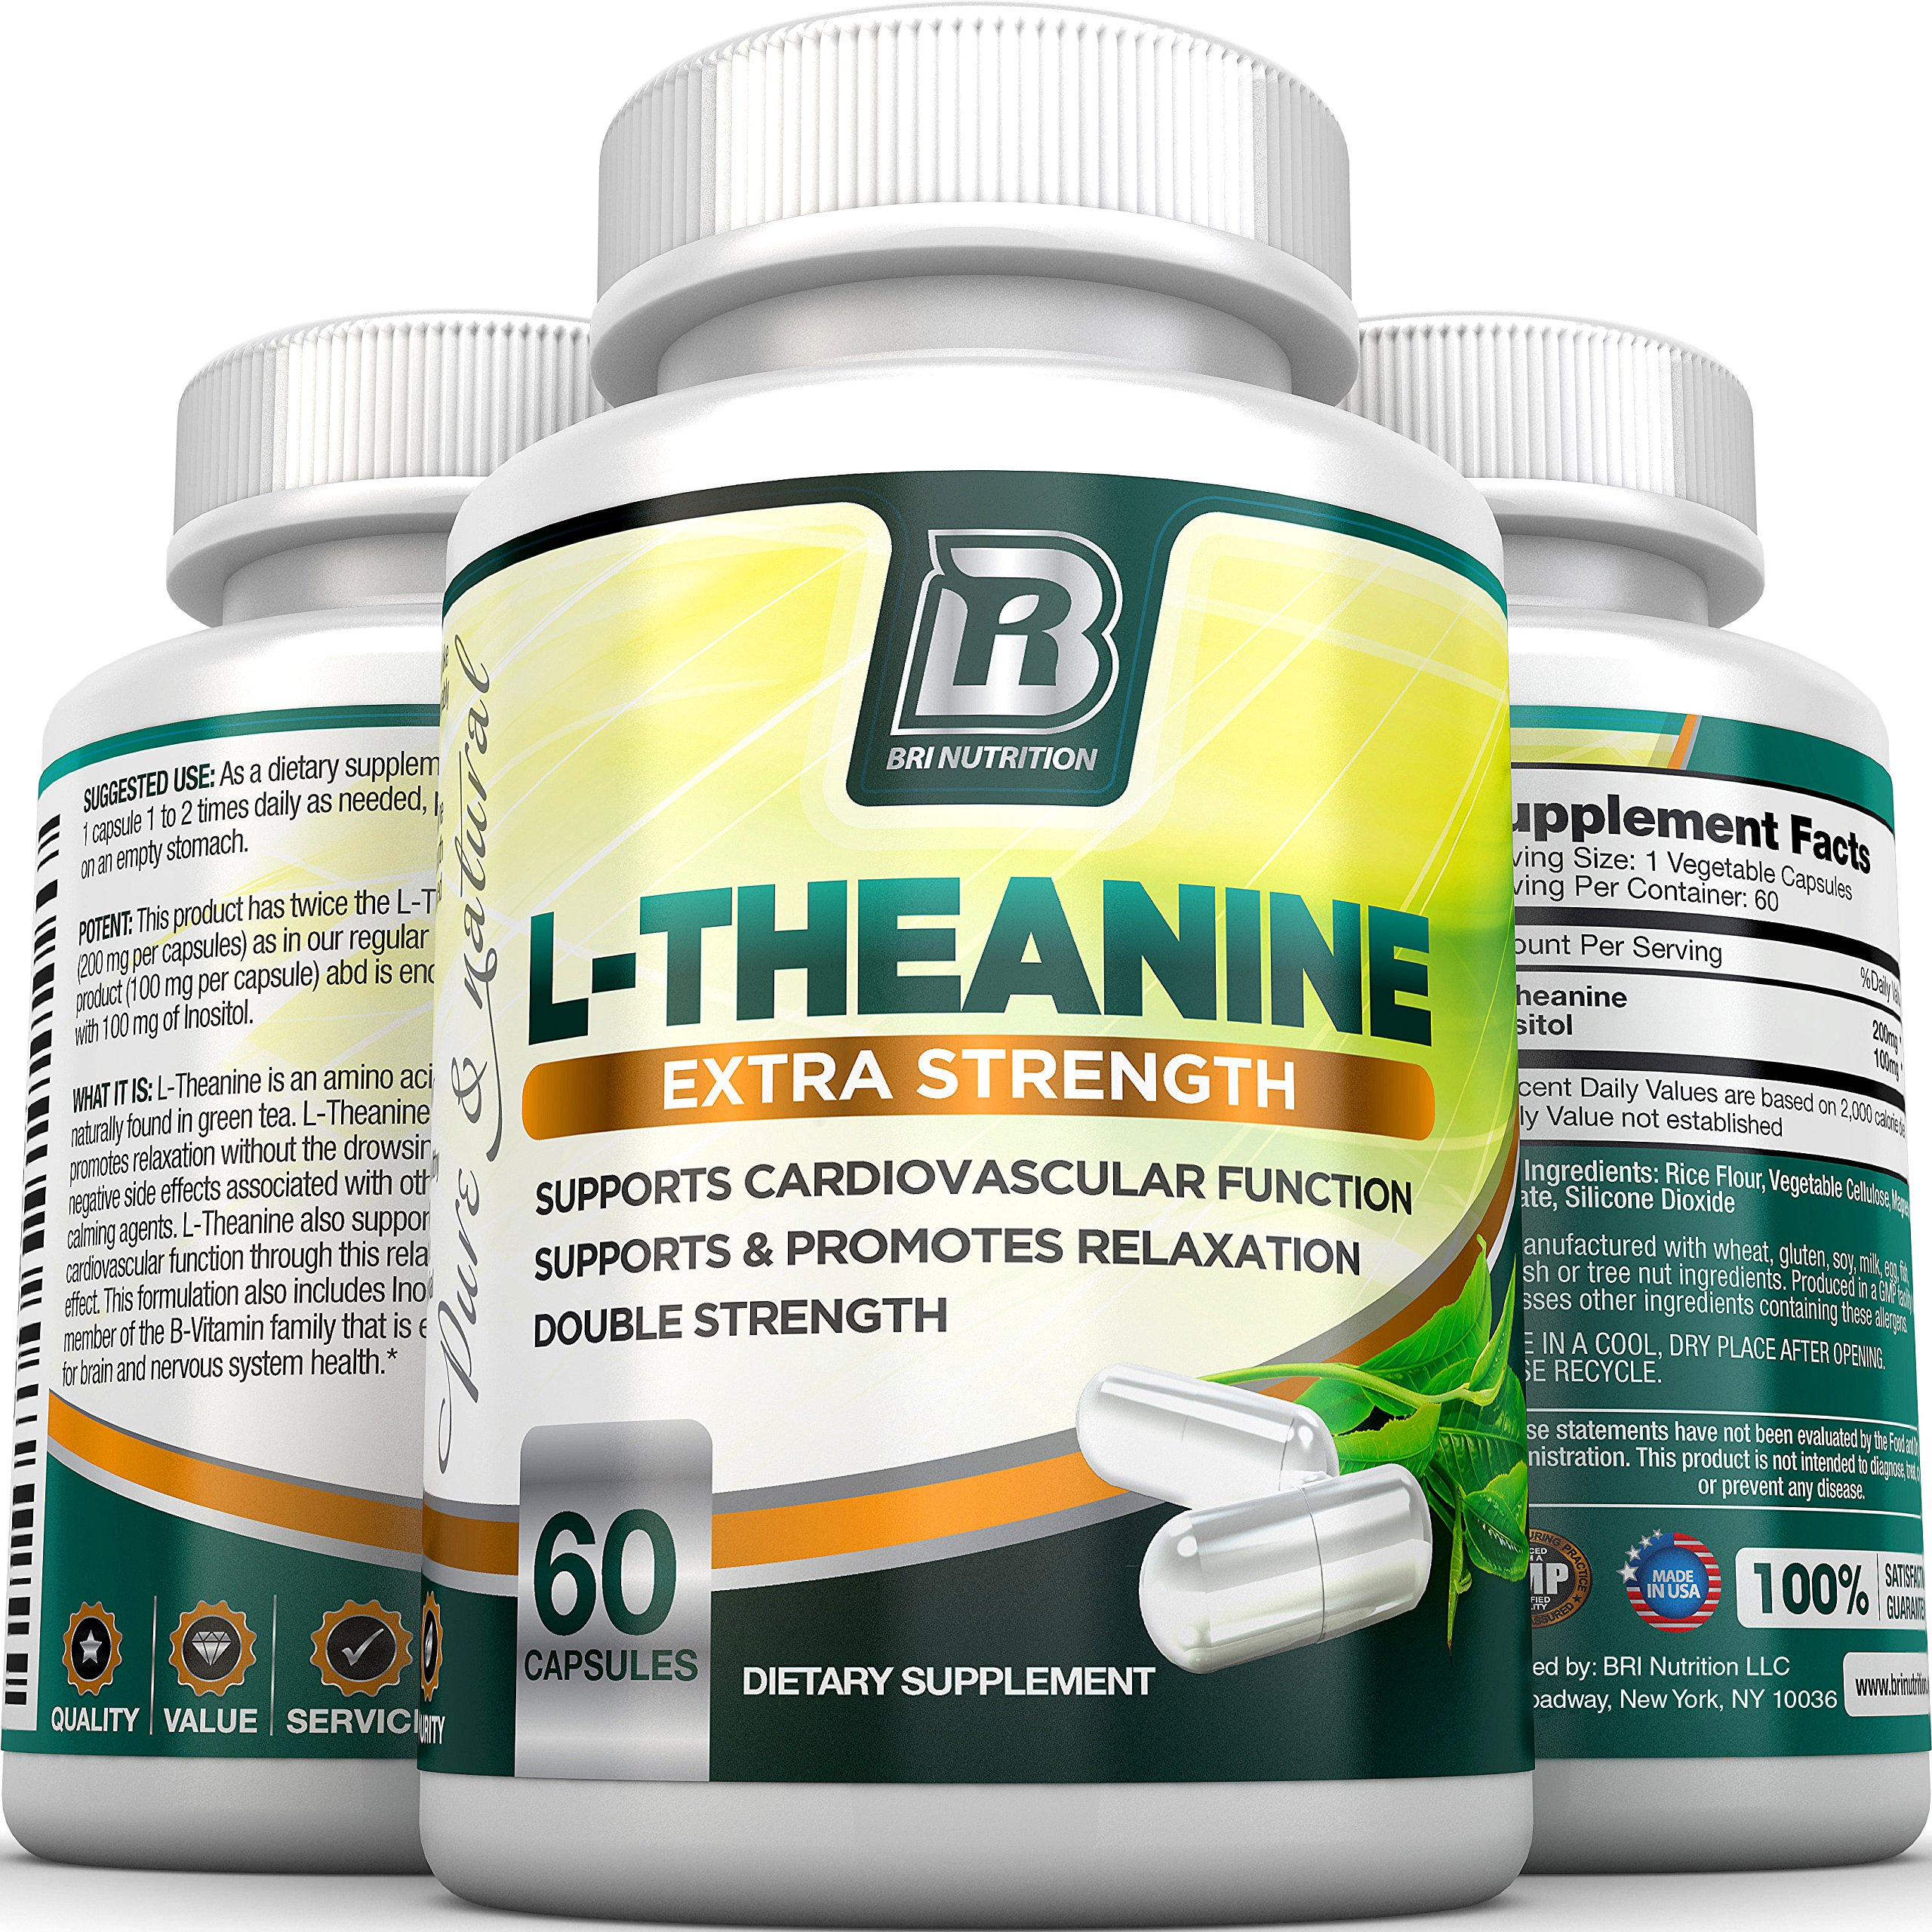 BRI Nutrition 200mg L-Theanine Enhanced with 100 mg of Inositol - 60 Count 200mg L Theanine Veggie Capsules by BRI Nutrition (Image #6)